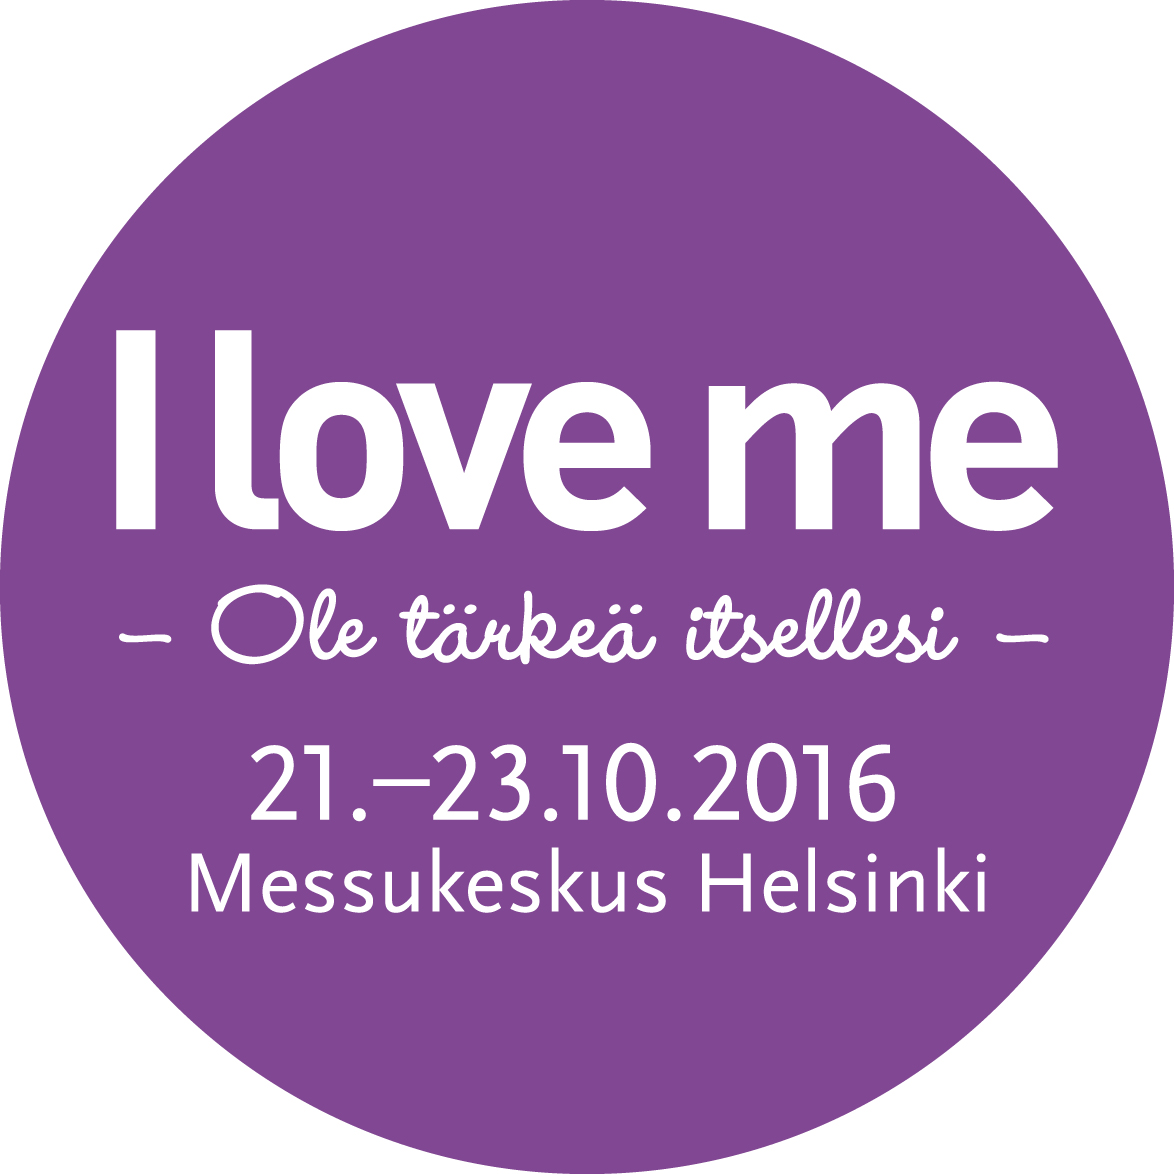 I Love Me 2016 -messut